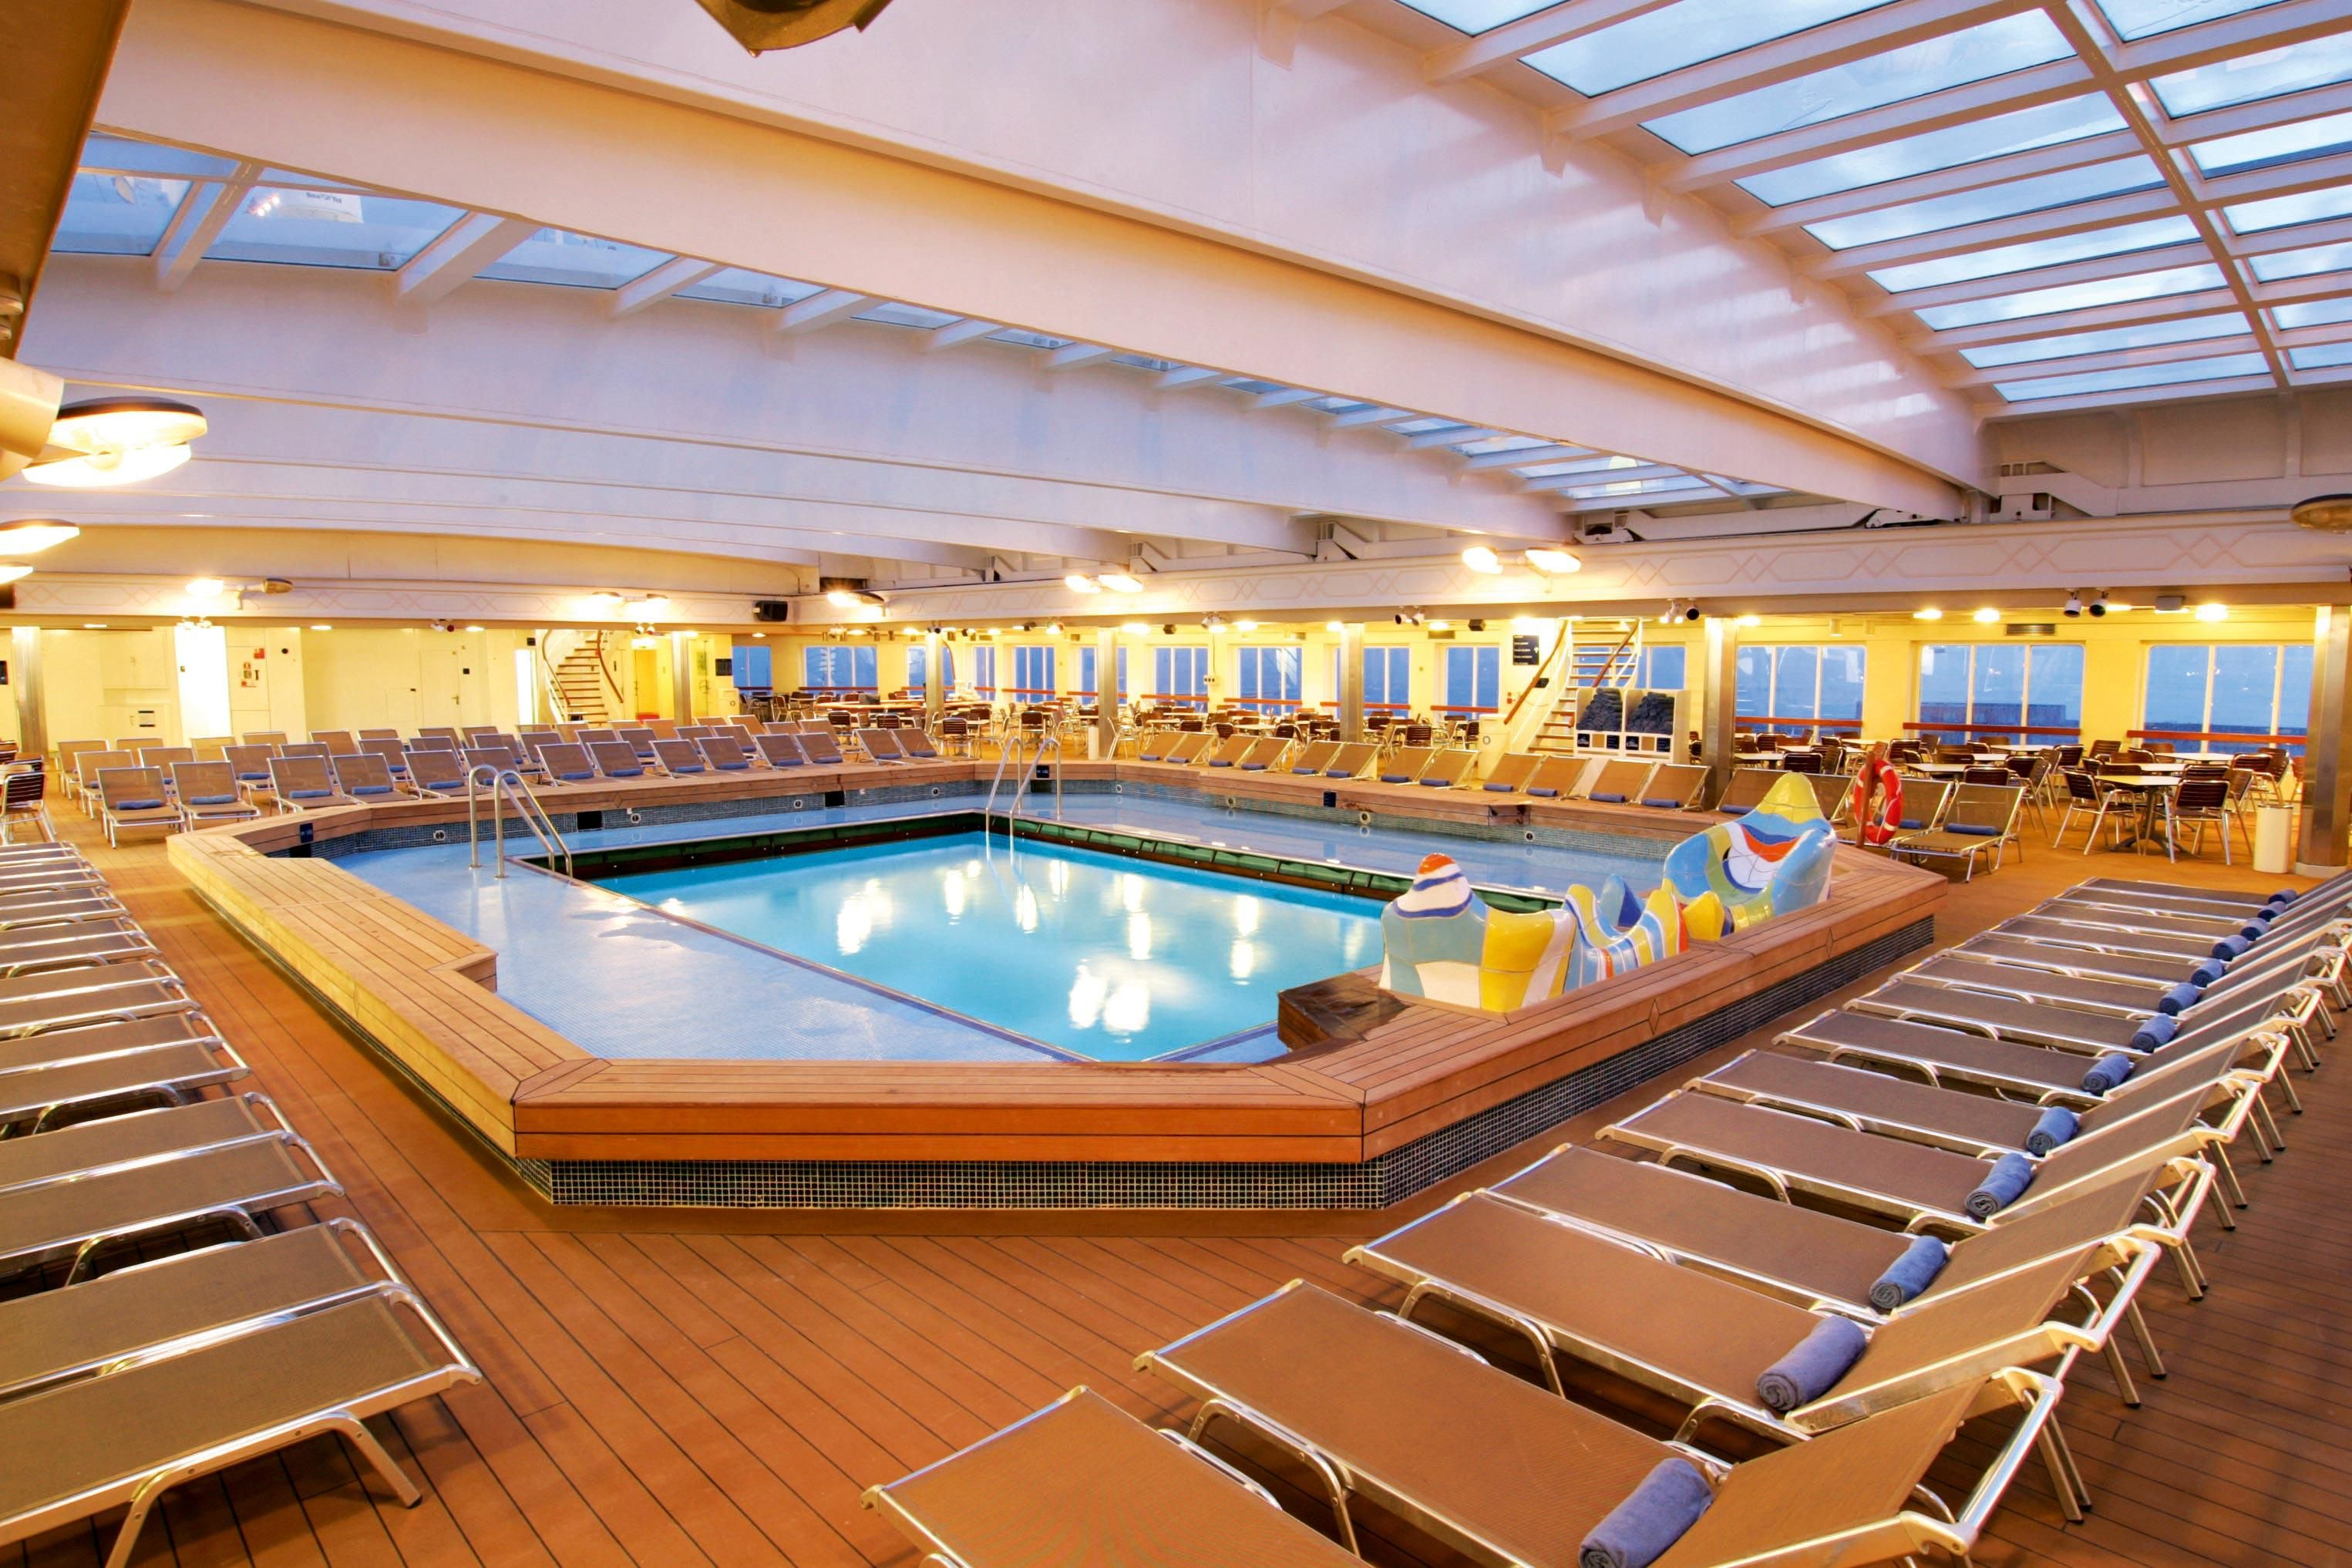 The Indoor Pool On The Thomson Dream Thomson Cruises Pinterest - The thomson dream cruise ship